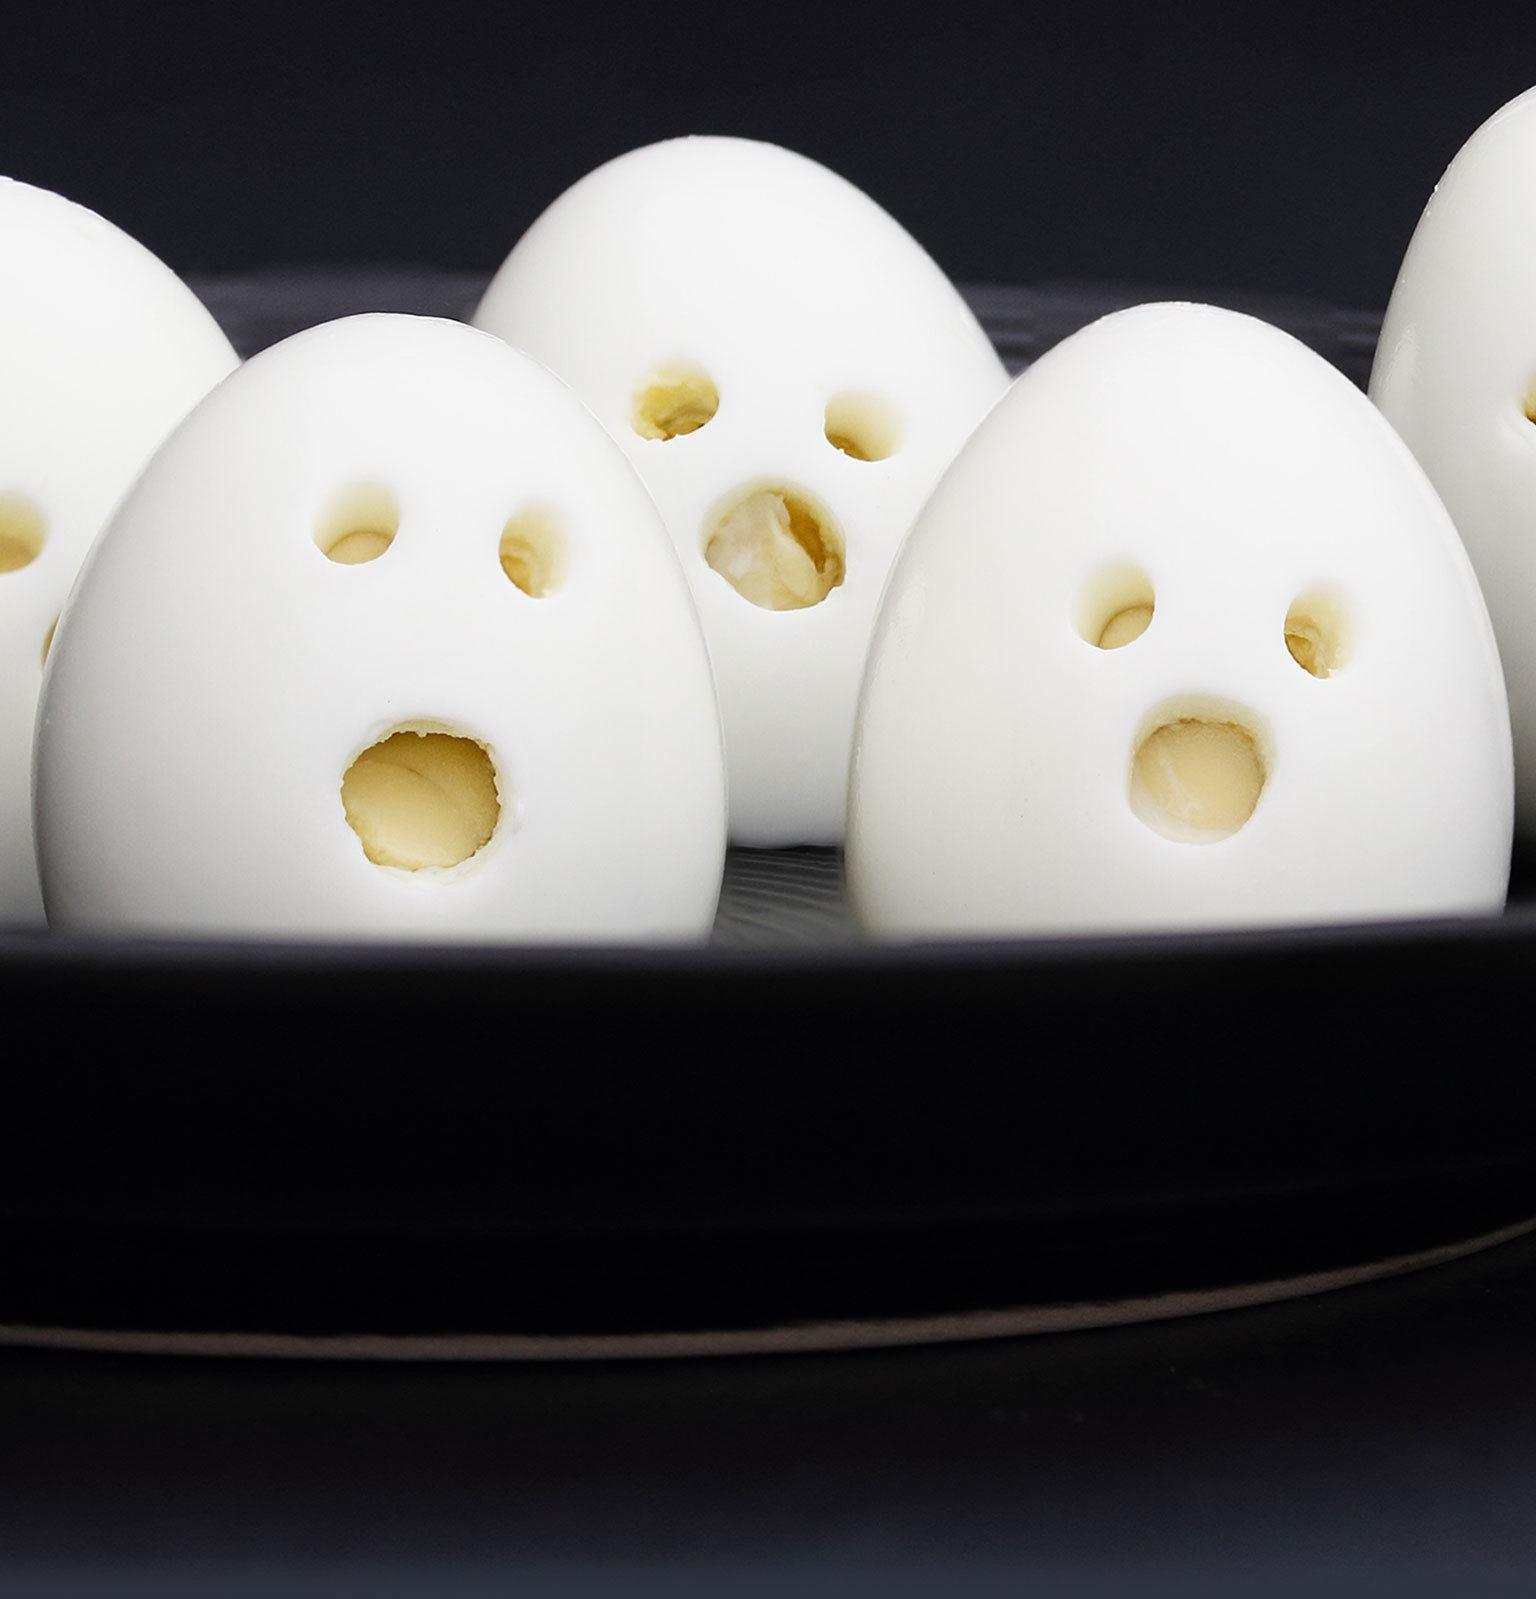 Hard boiled eggs that look shocked